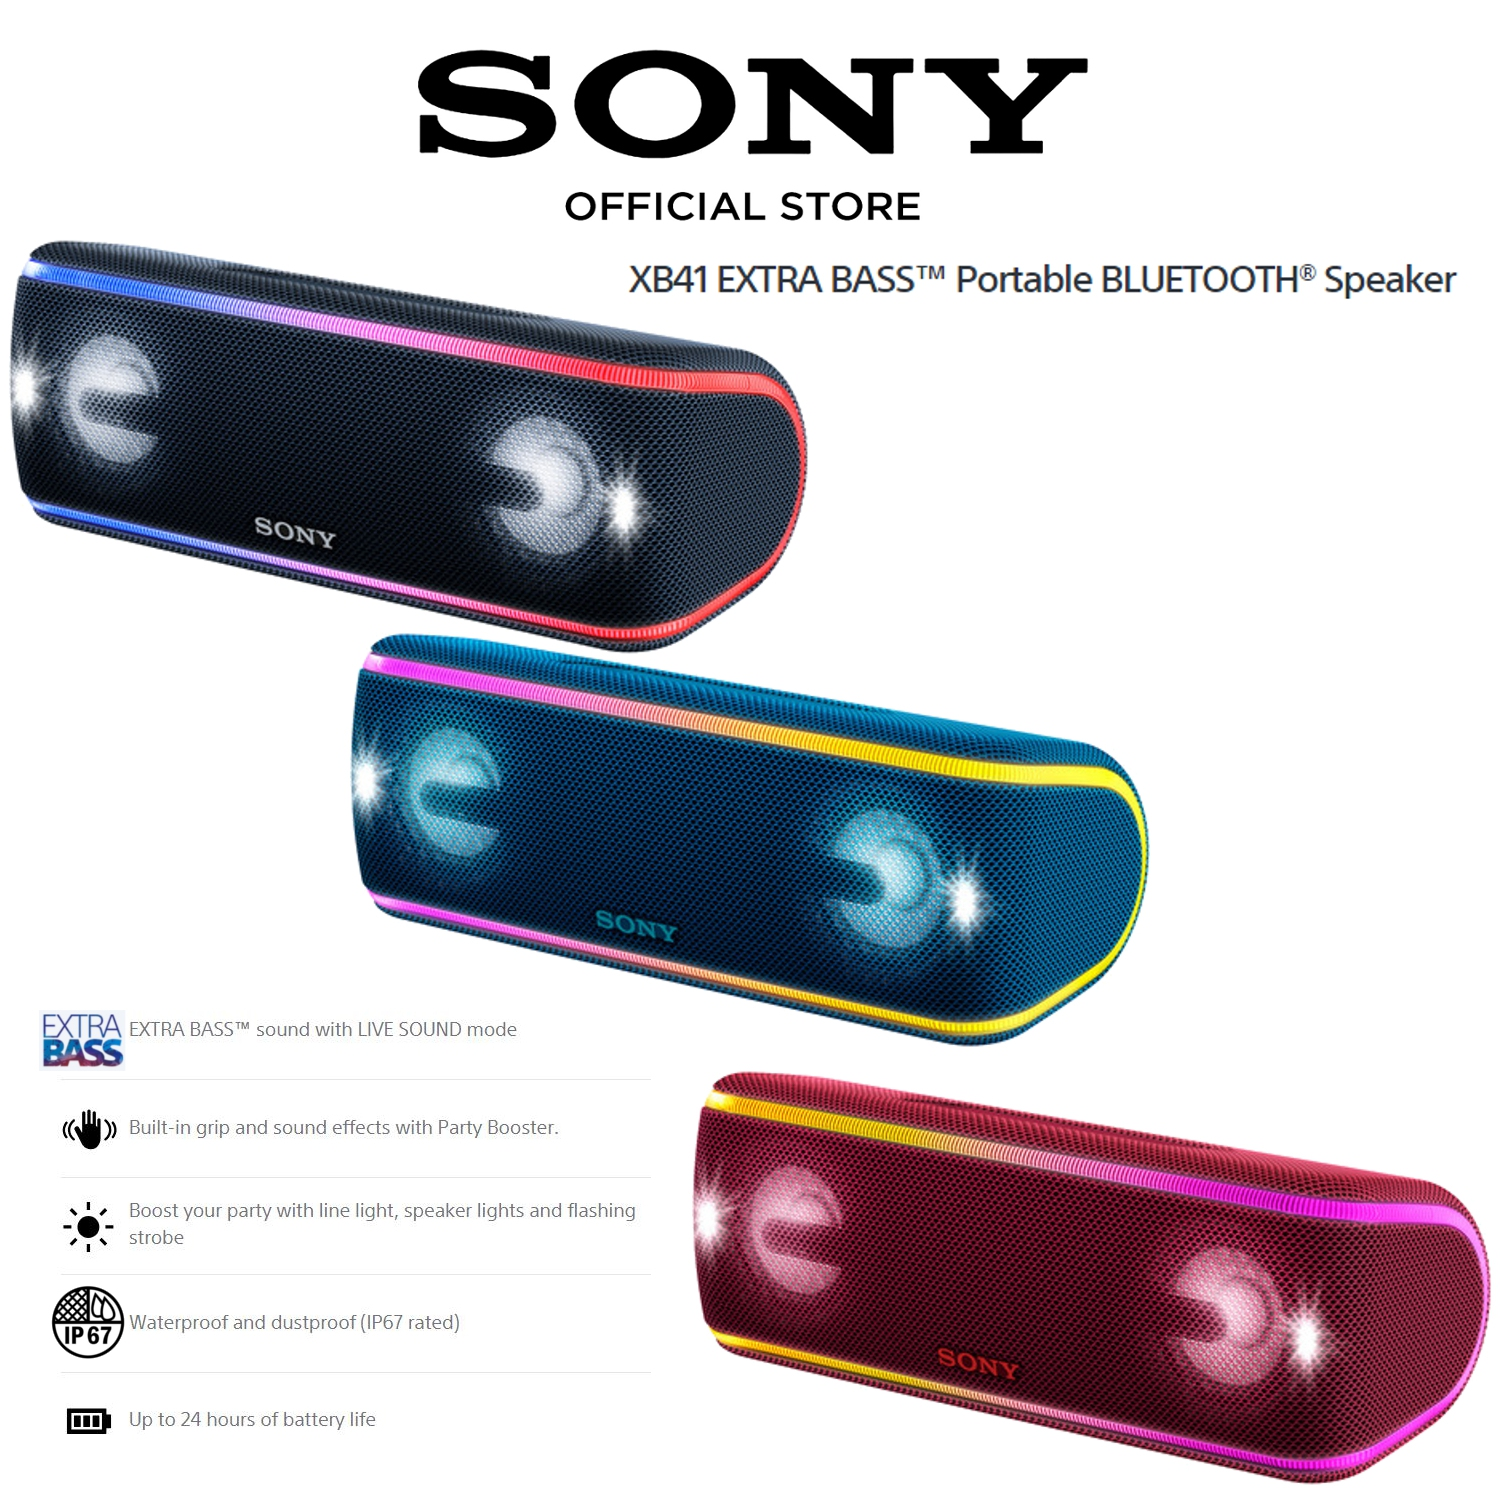 Sony SRS-XB41 Portable Wireless Bluetooth Speaker Waterproof Dustproof